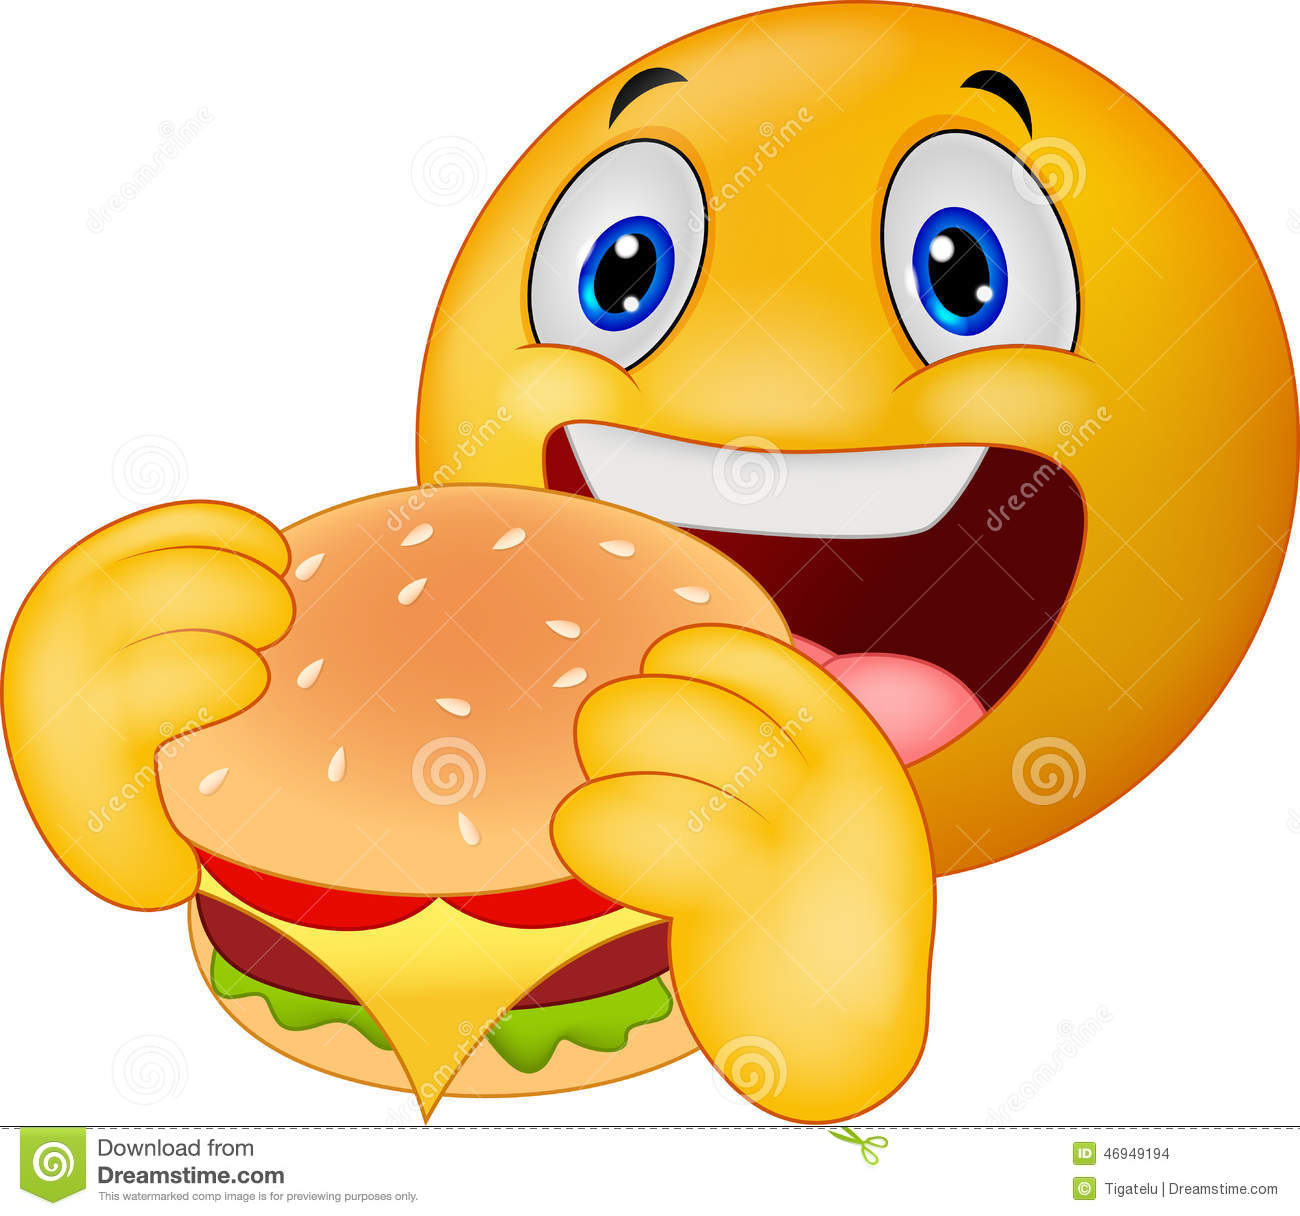 Smiley clipart hamburger Smiley Smiley Hamburger Hamburger Eating